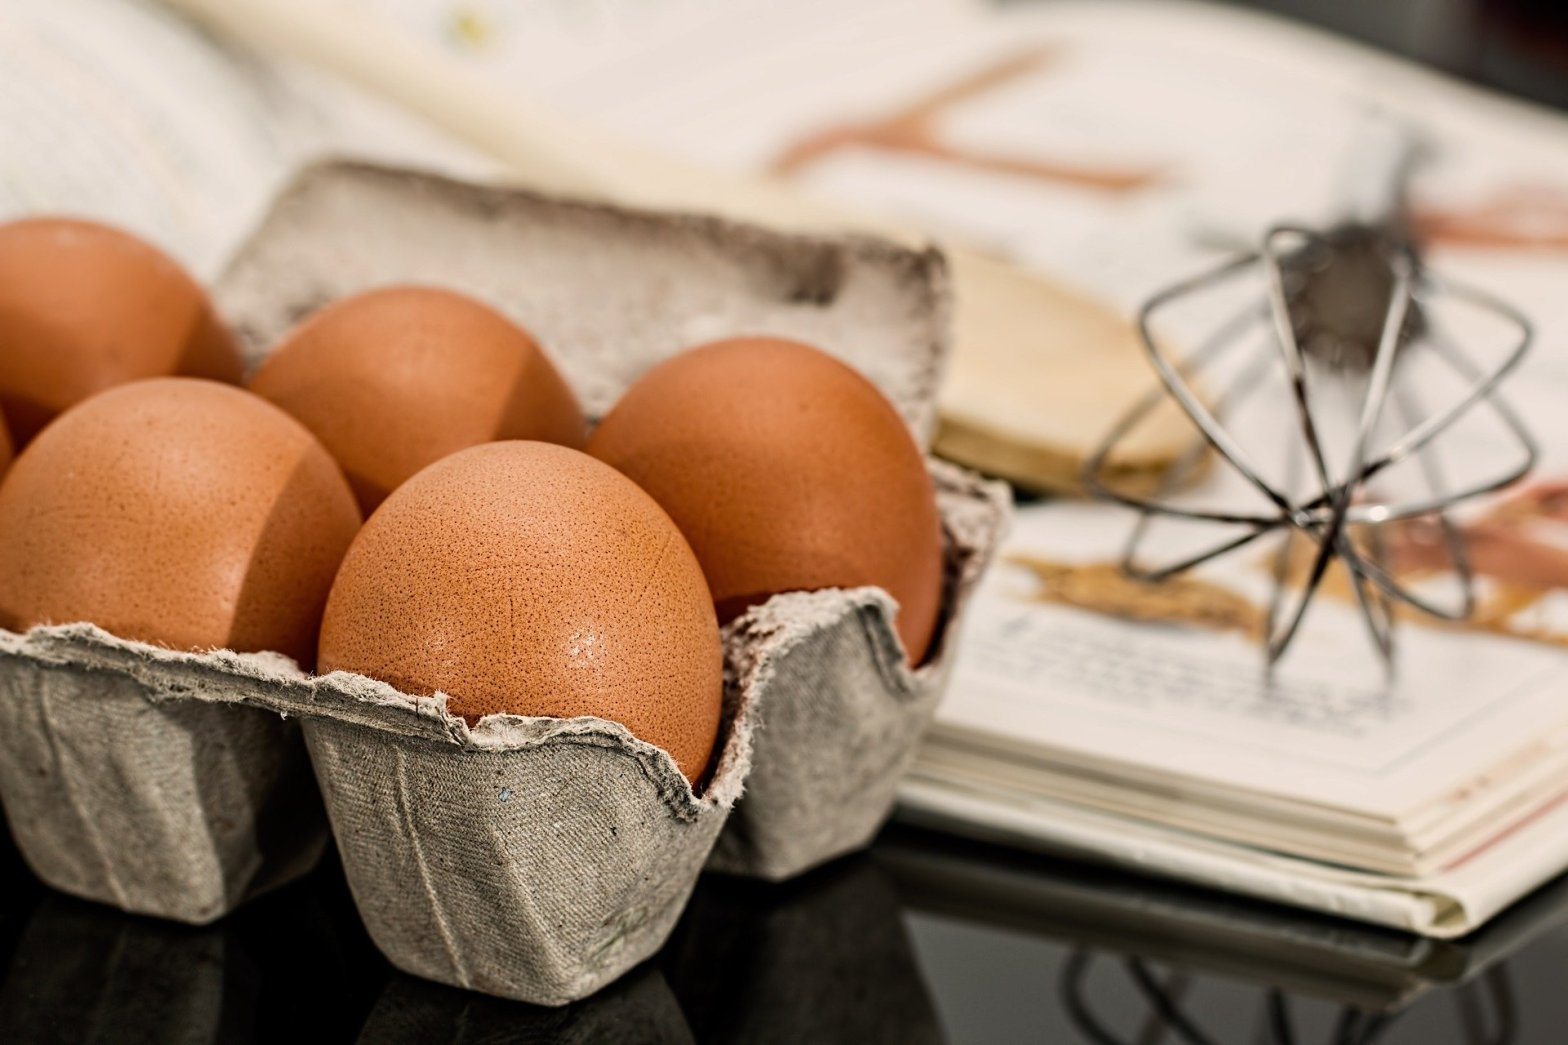 A whisk and eggs on a cookbook